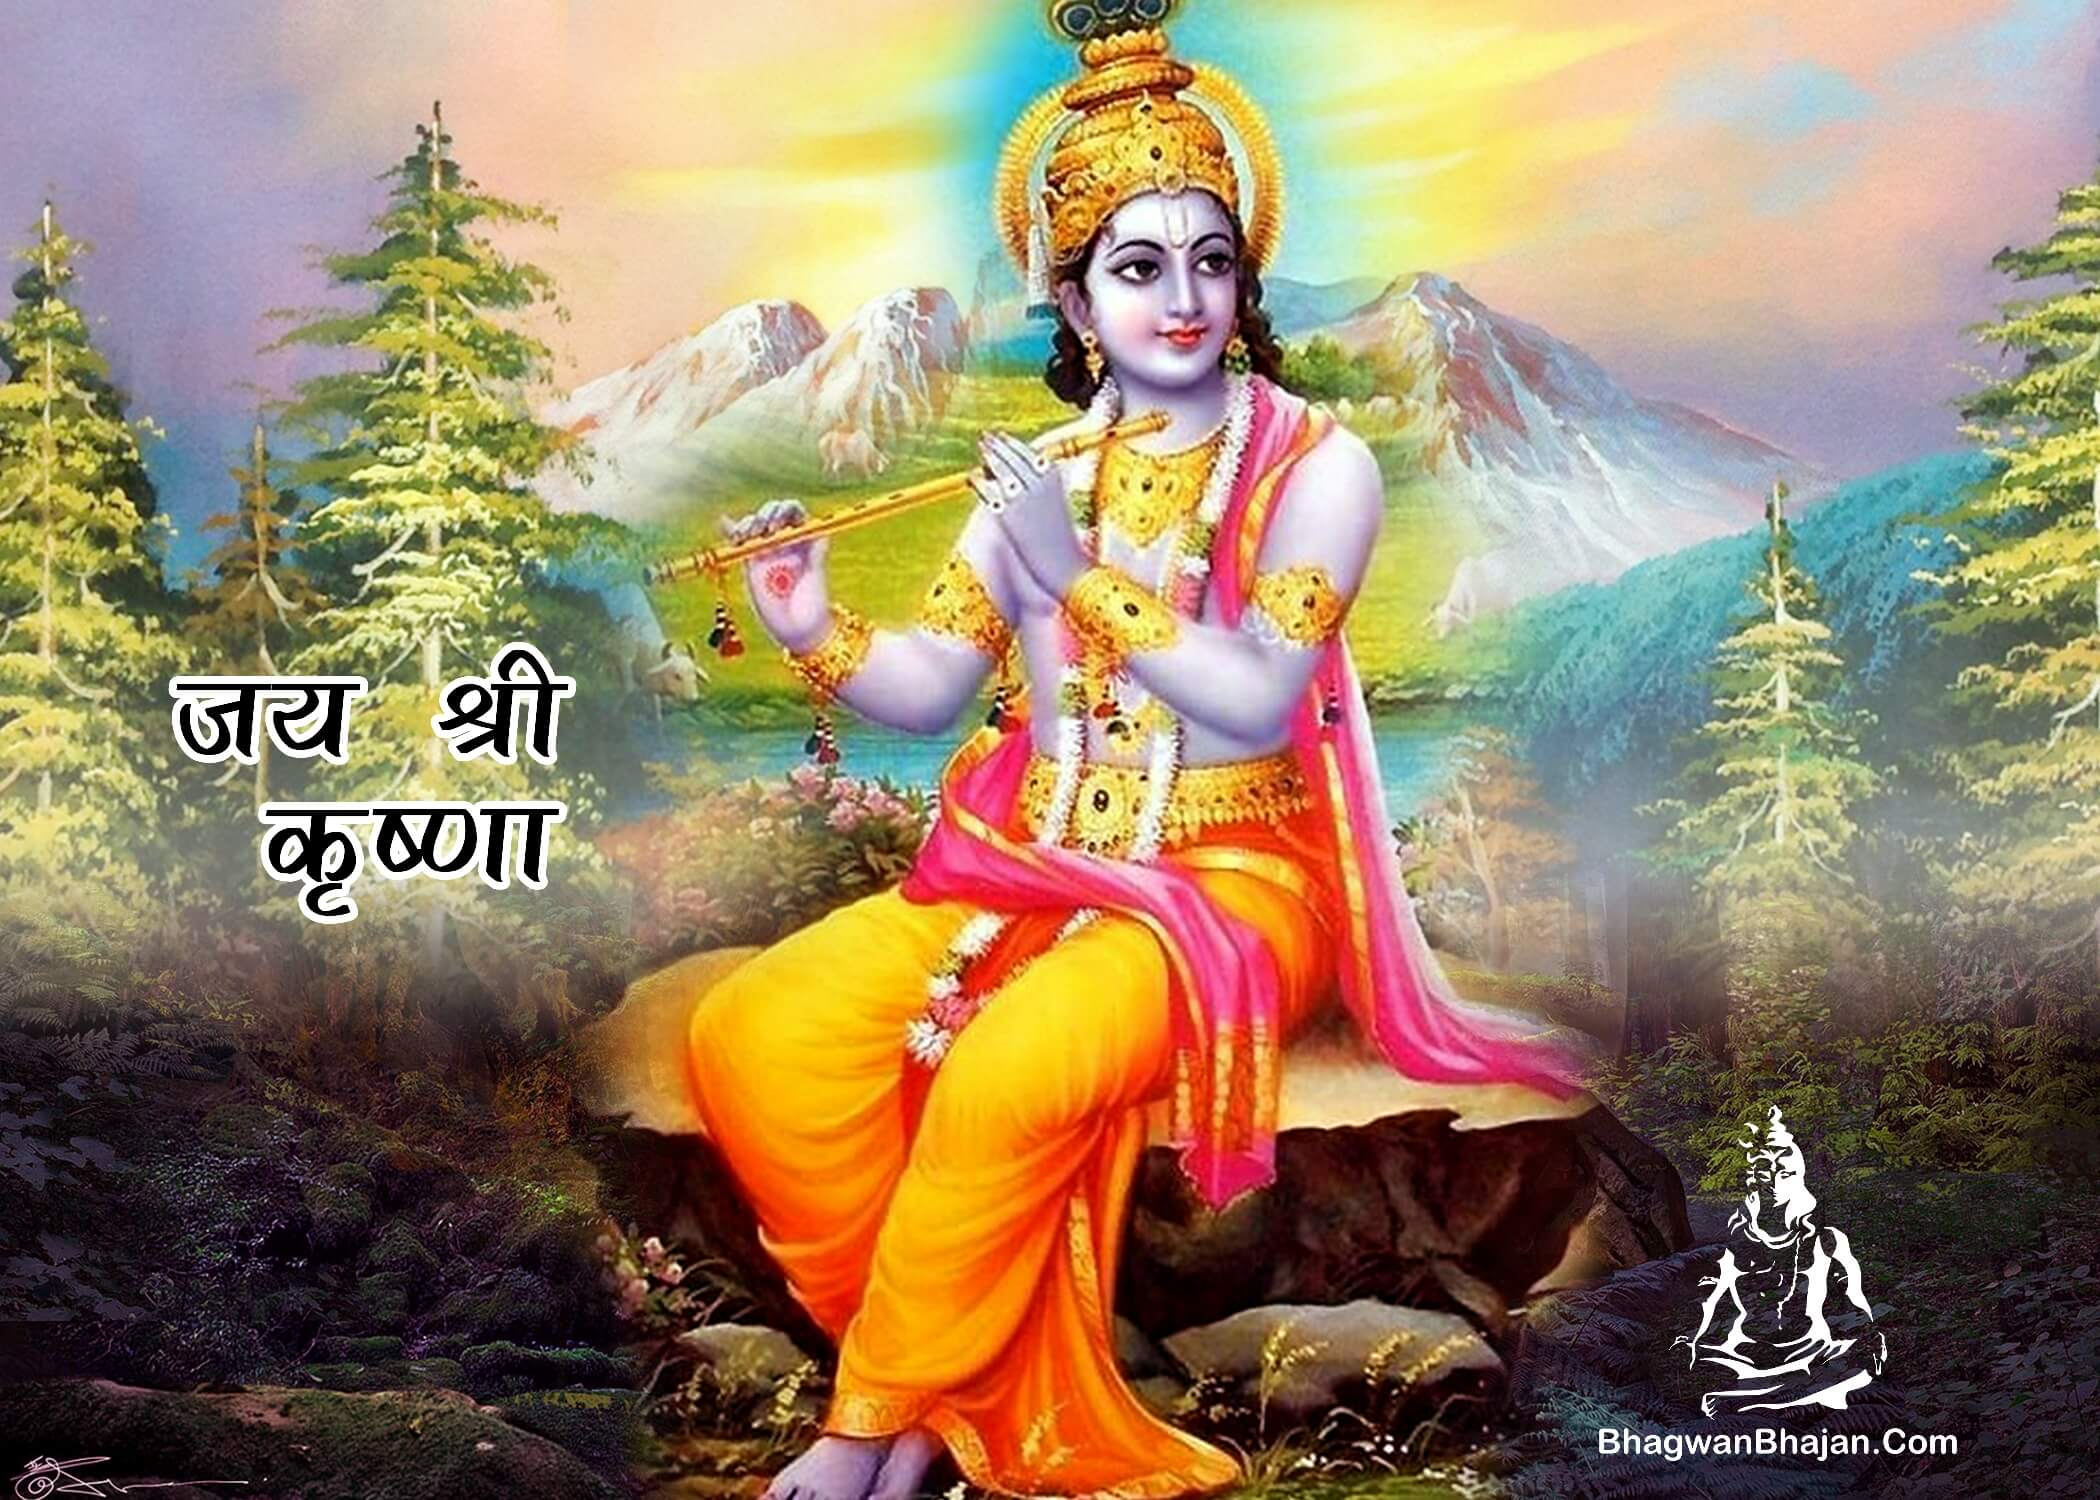 jai shri krishna hd wallpaper